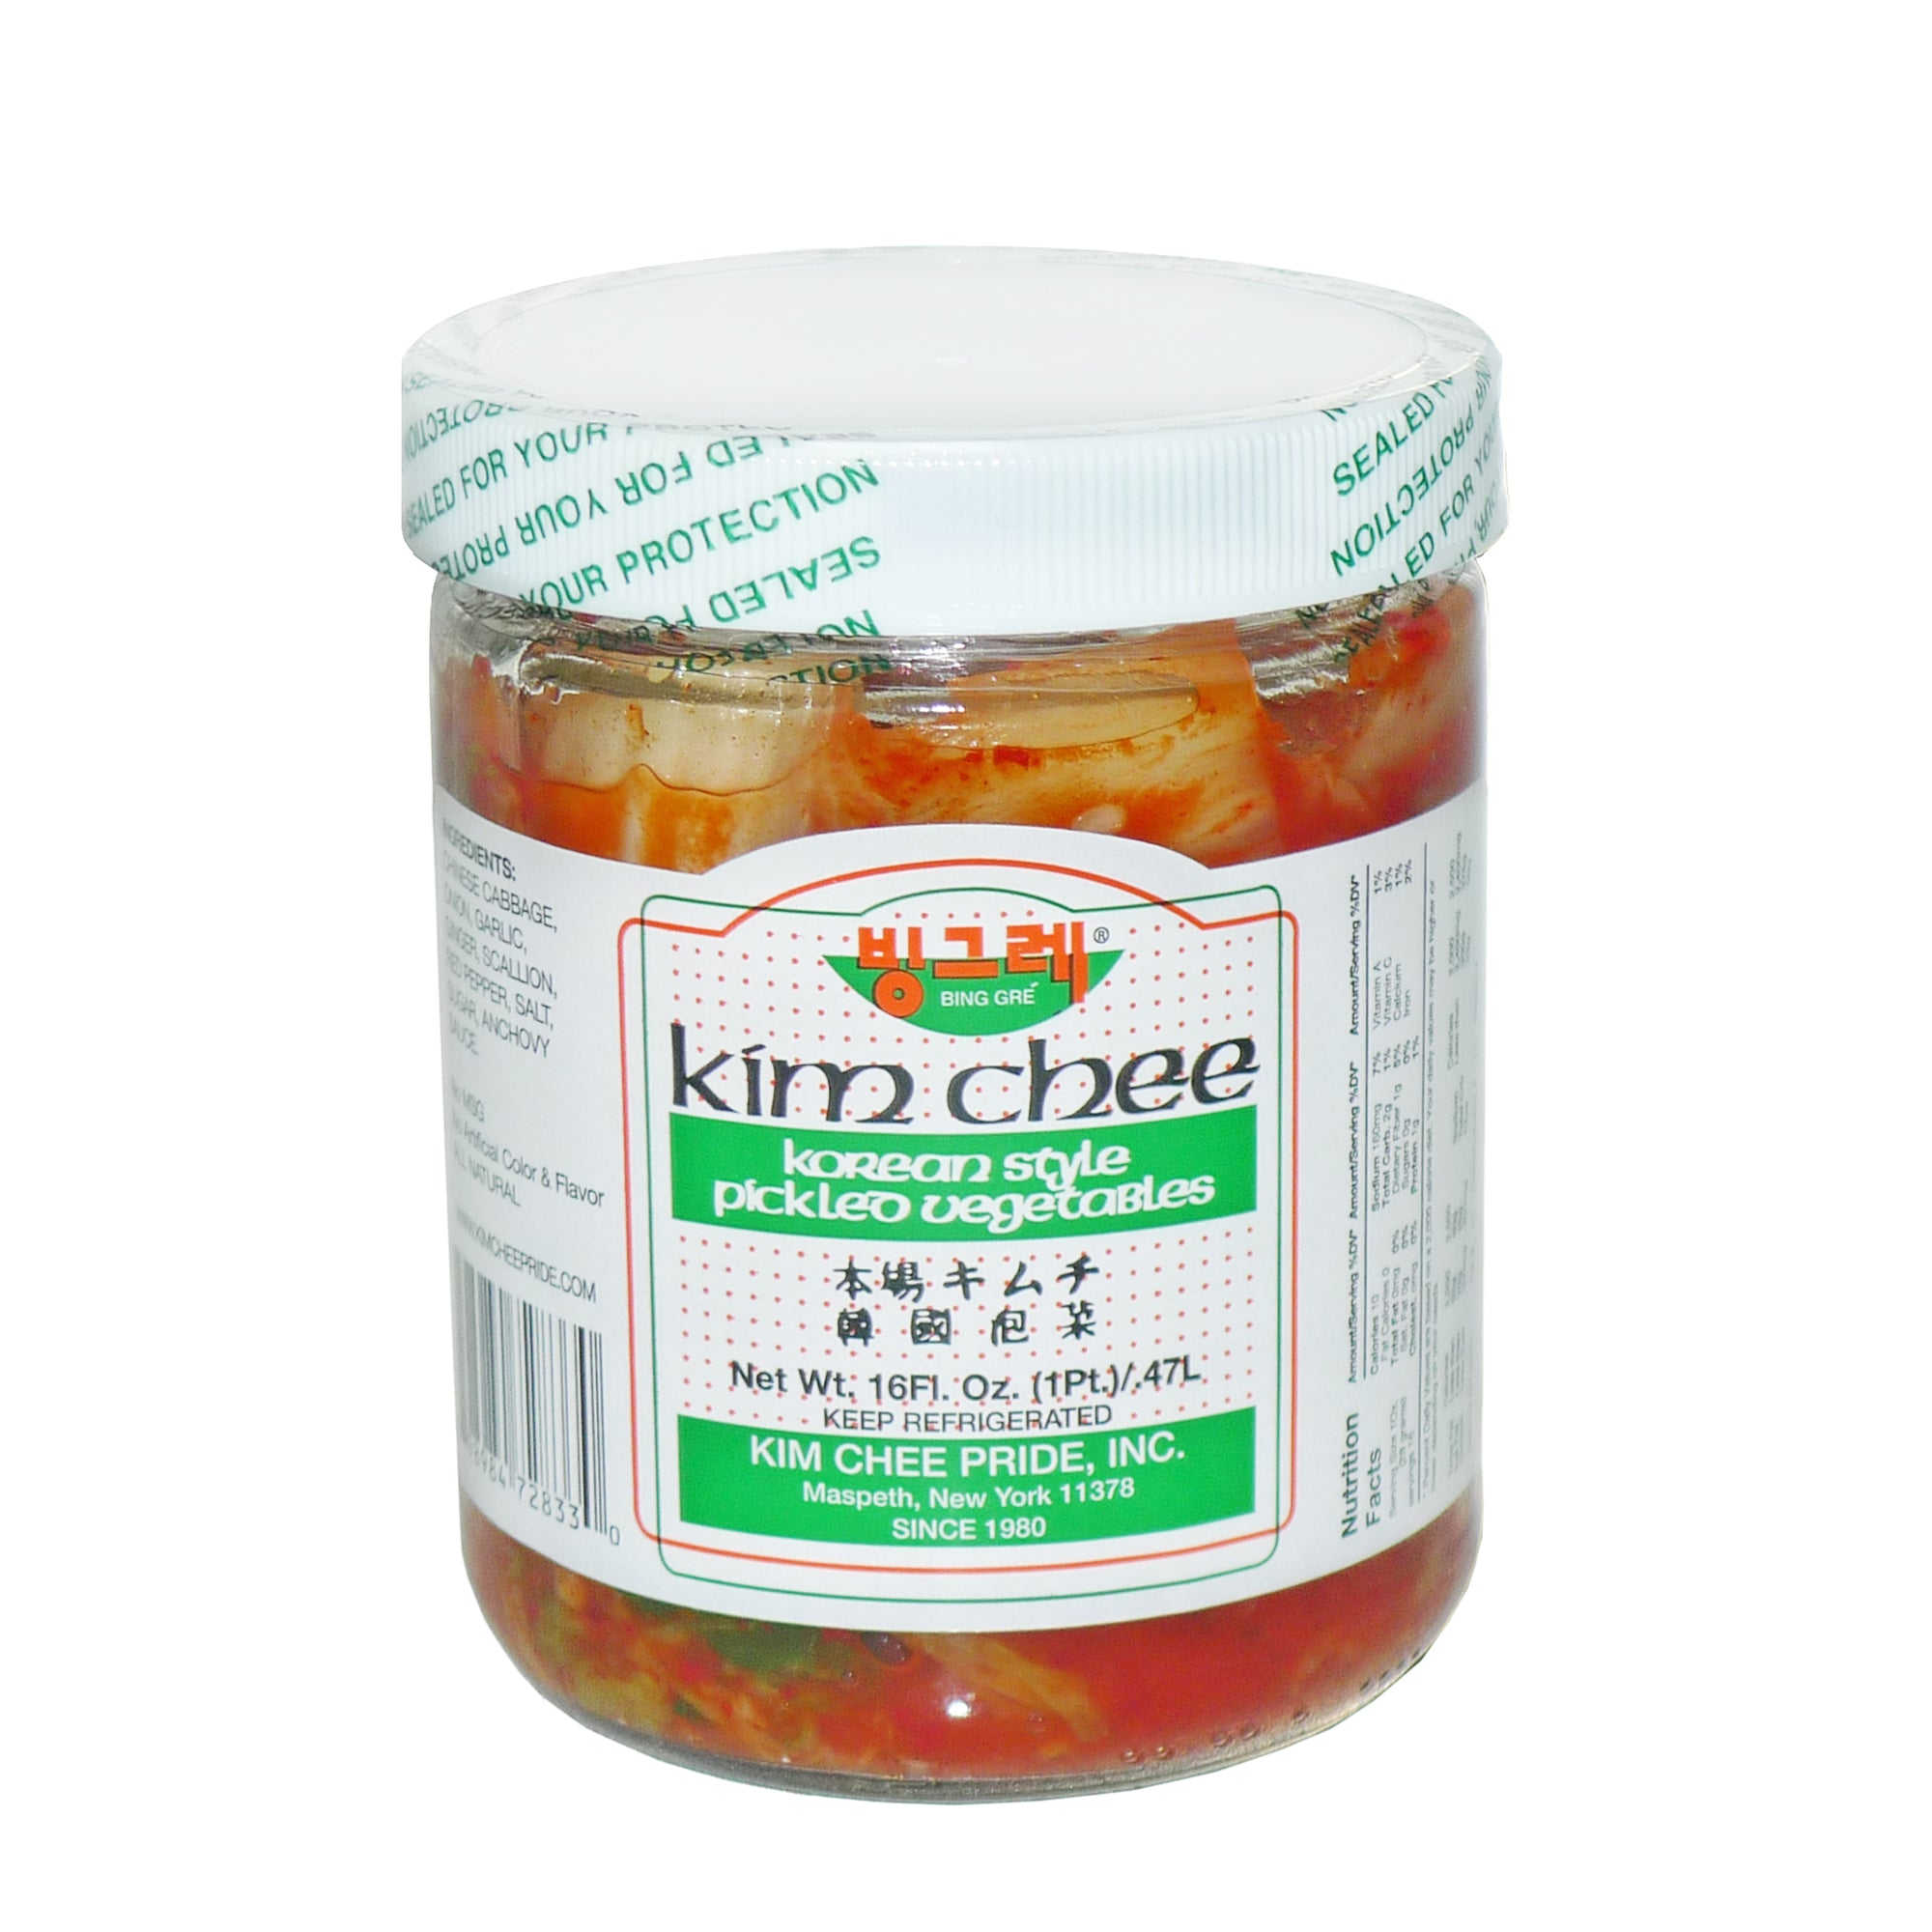 Bing Gre All Natural Kimchee 16 oz (454g) Grocery Delivery to NY NJ